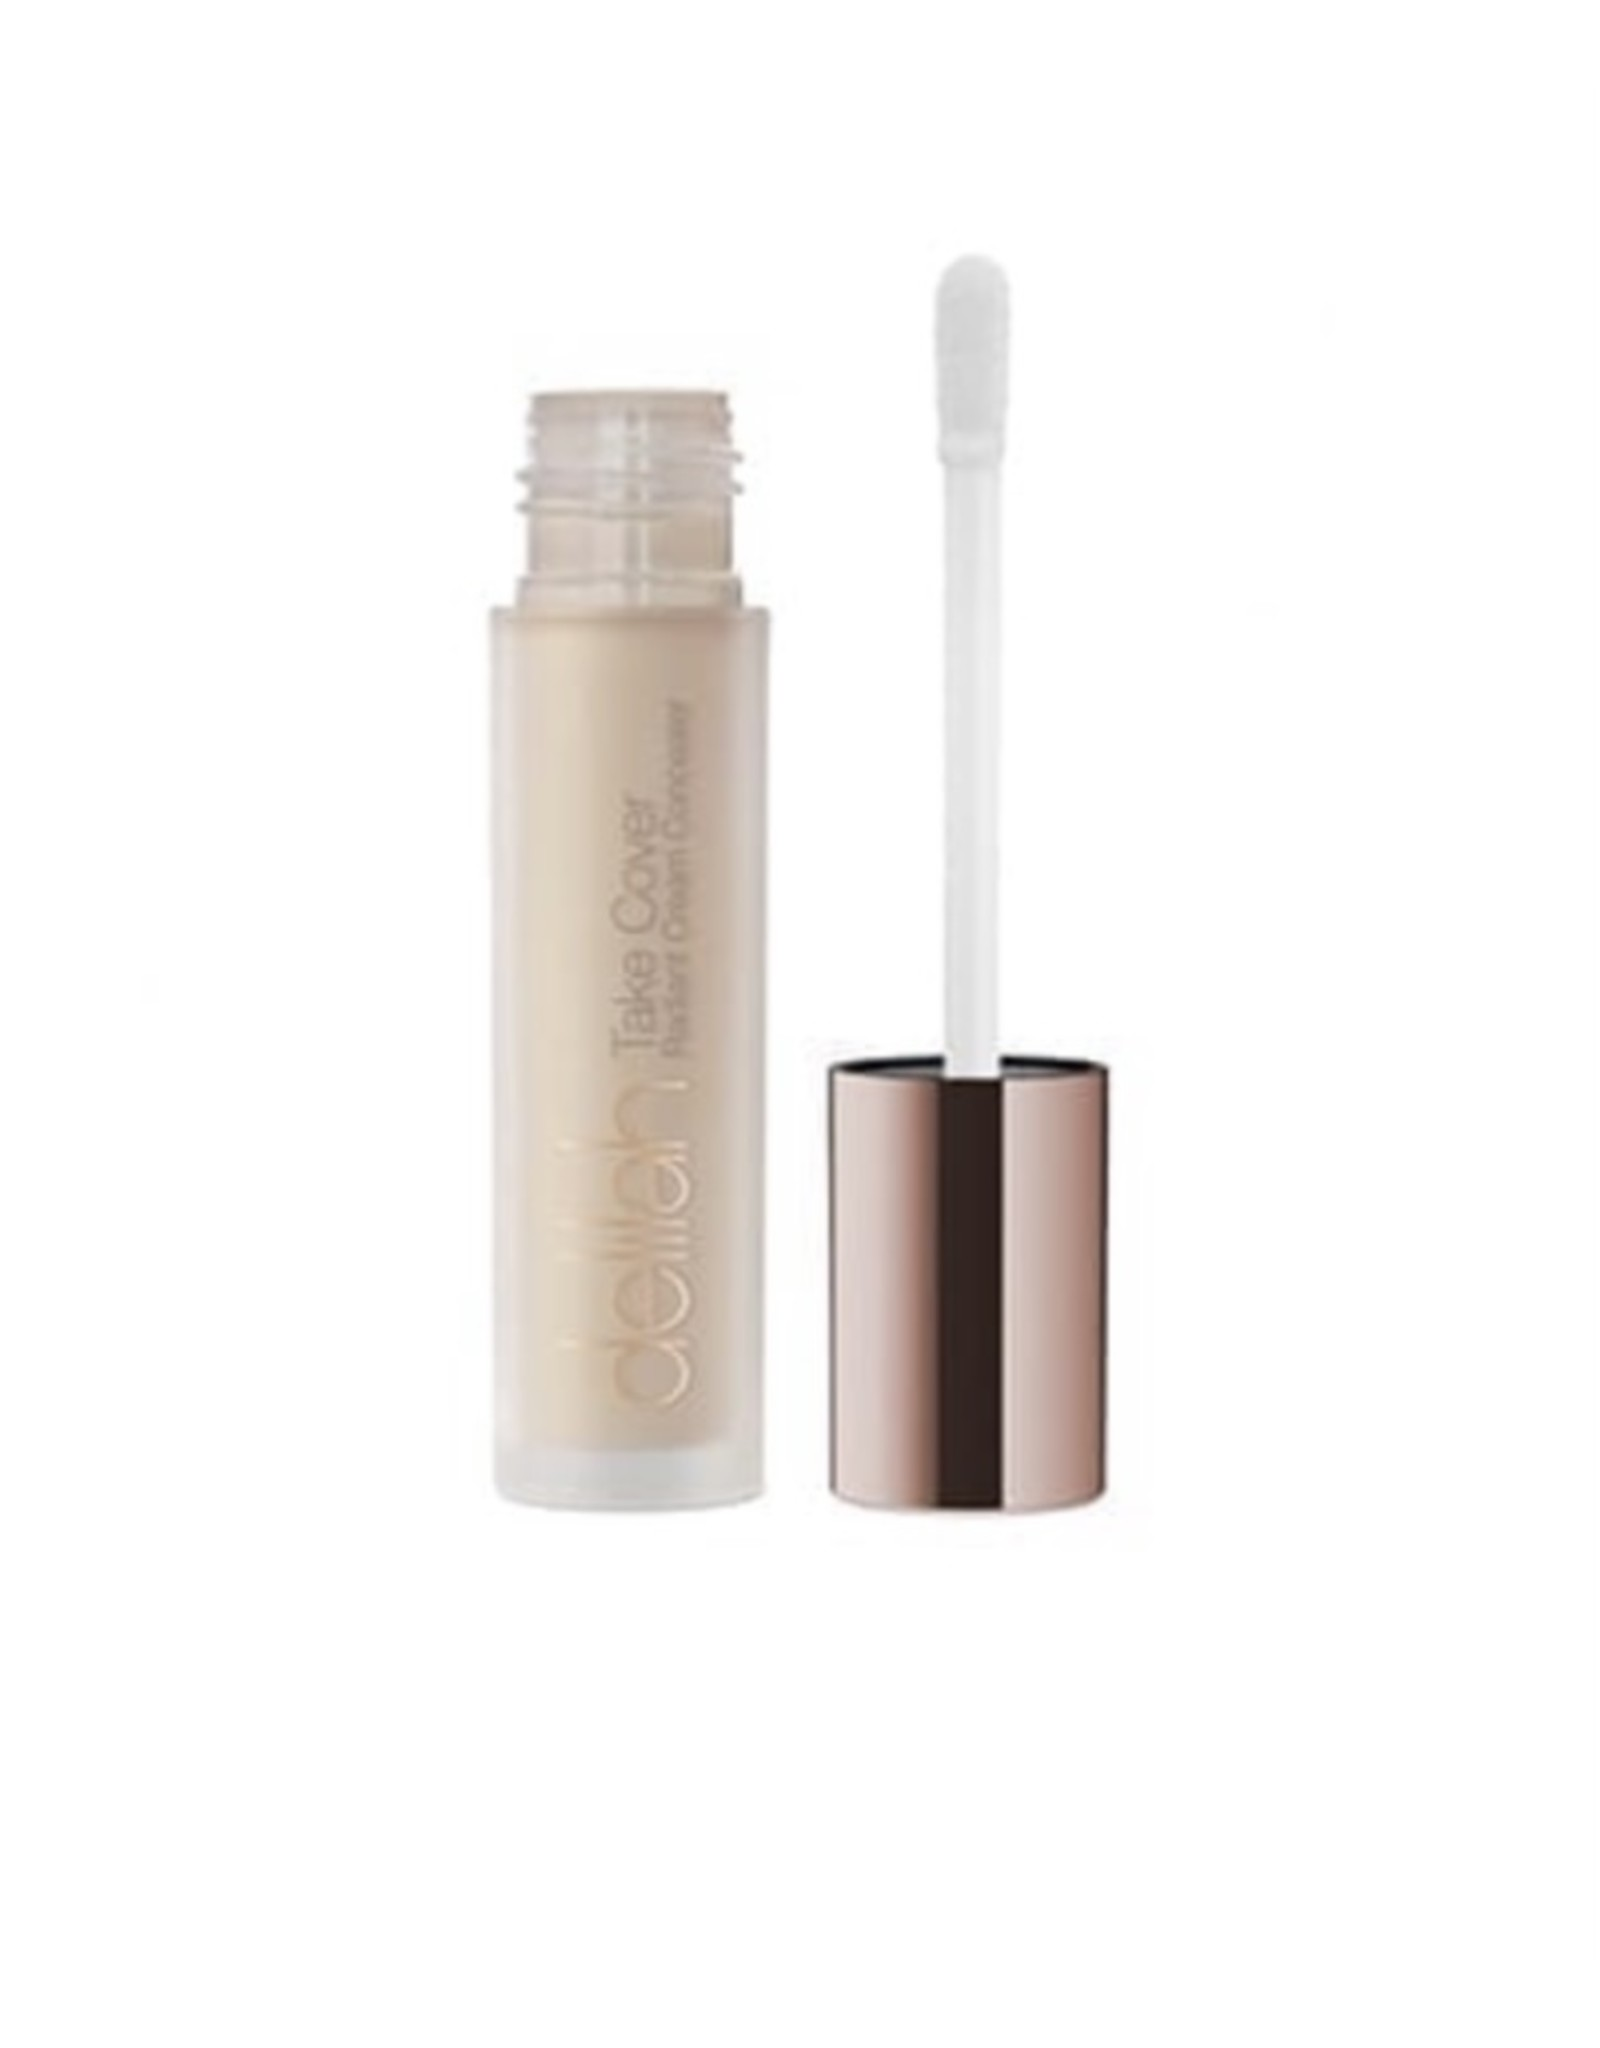 Delilah Take Cover Radiant Cream Concealer